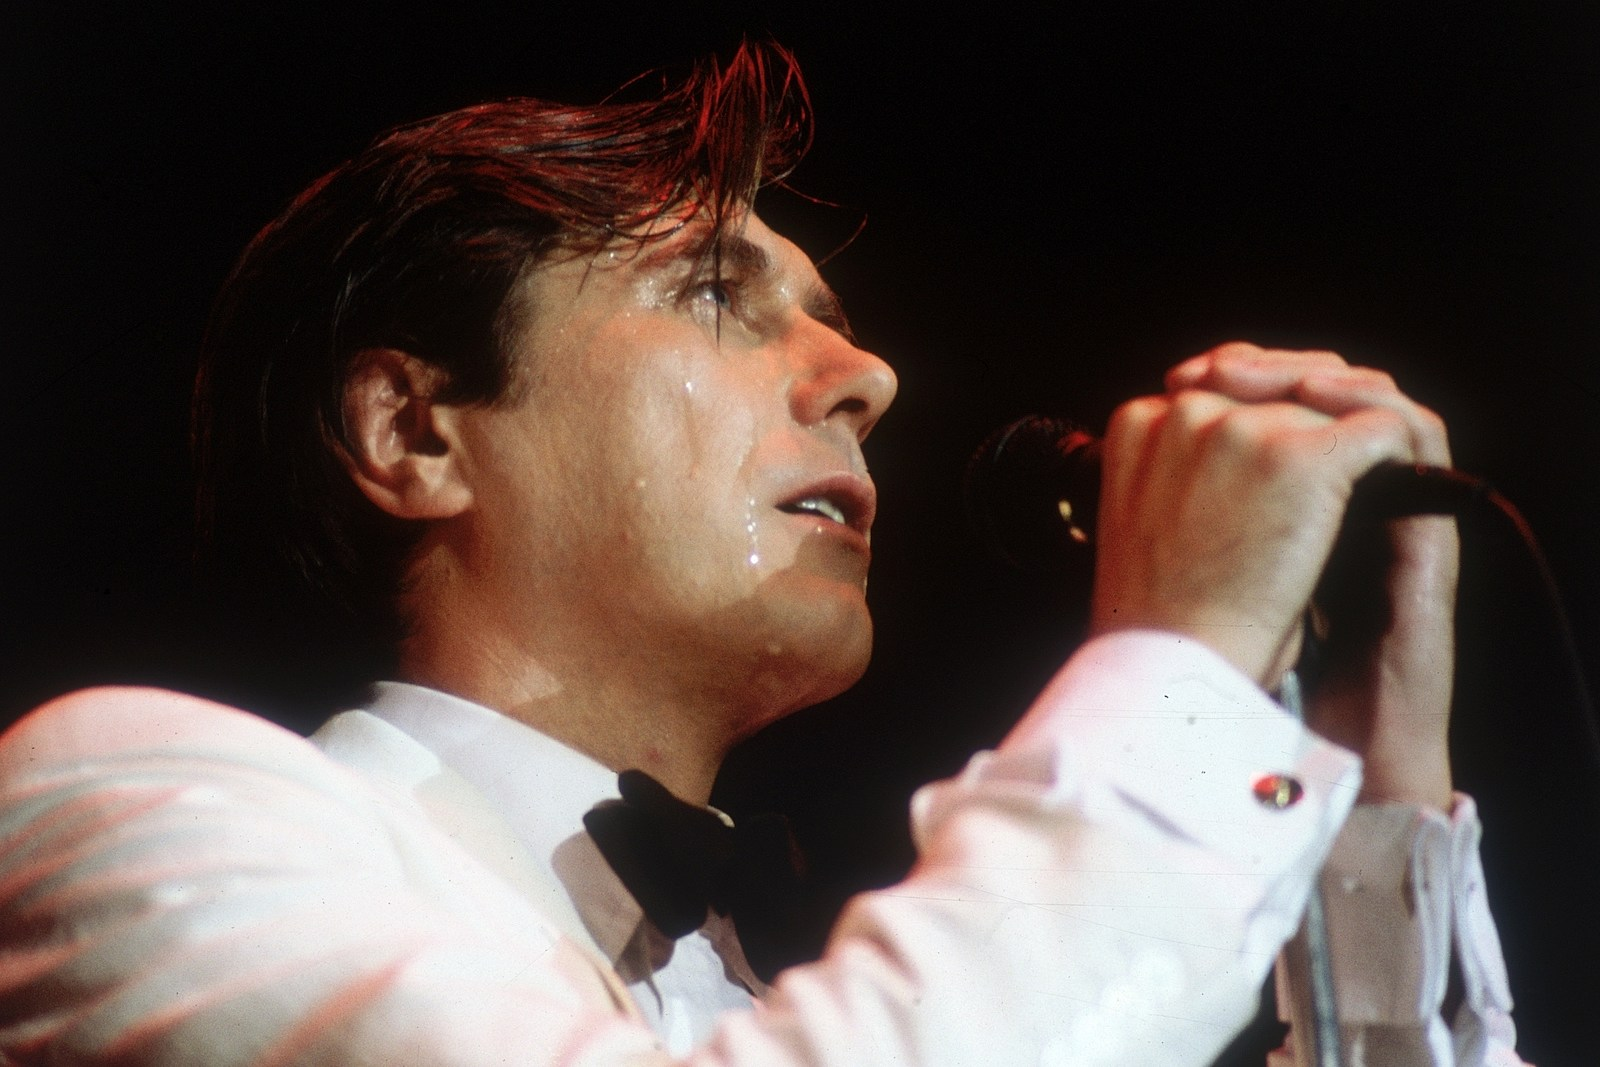 Five Reasons Roxy Music Should Be in the Rock & Roll Hall of Fame